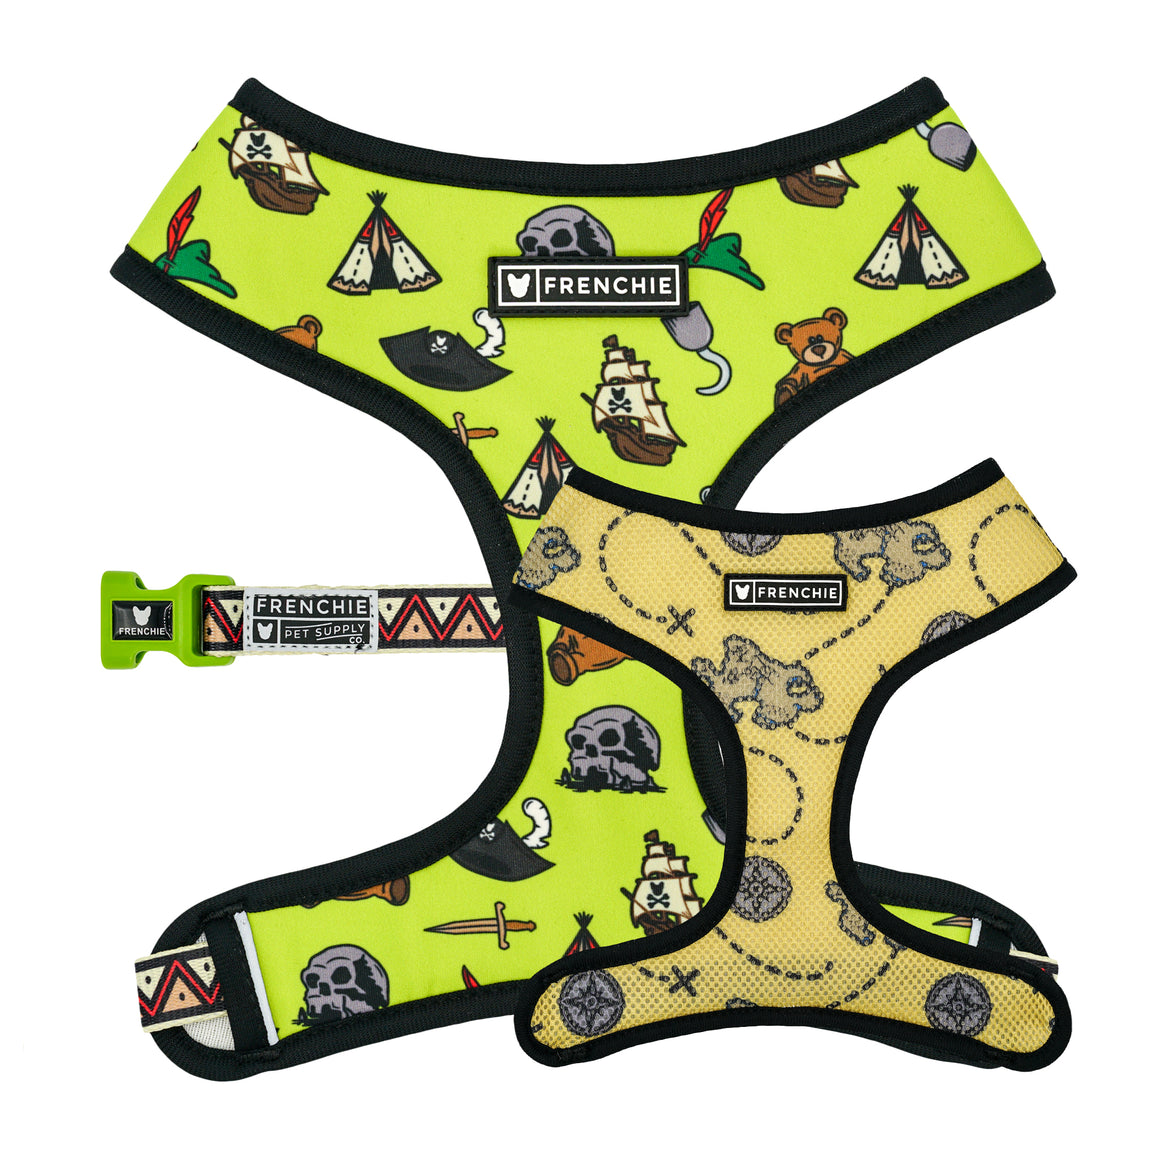 Frenchie Duo Reversible Harness - Pirate's Cove